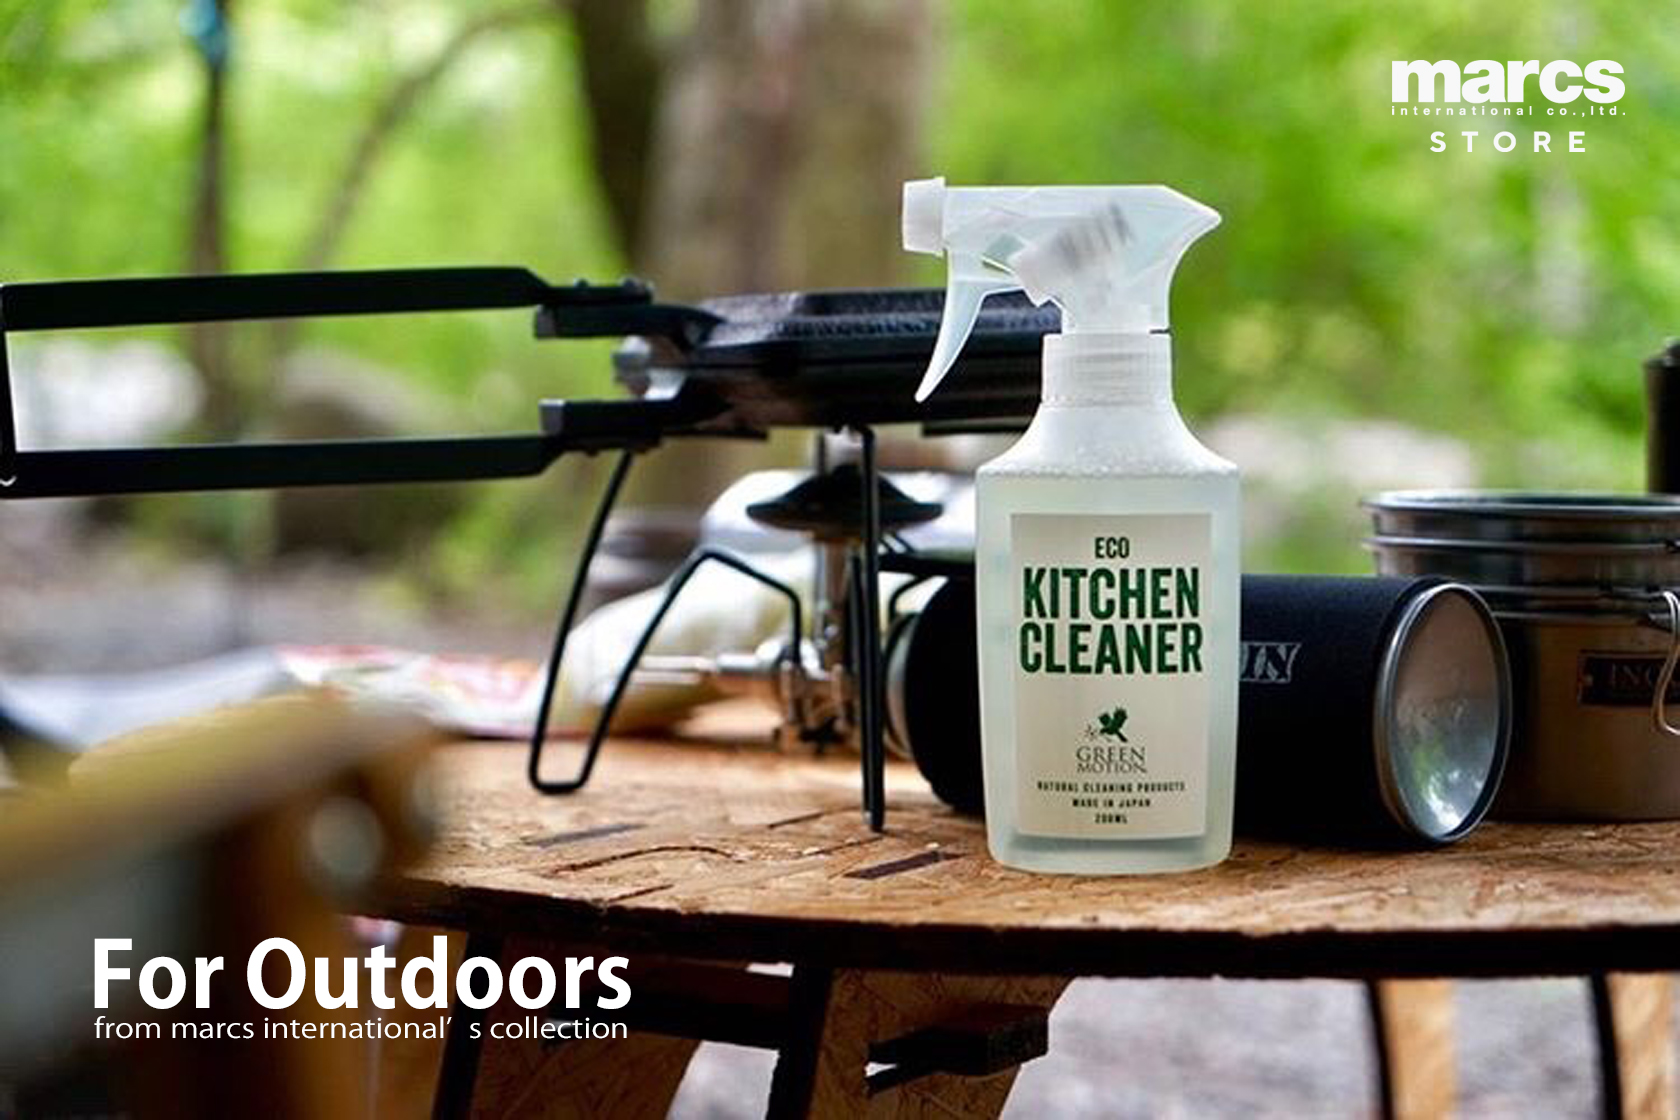 for Outdoors!